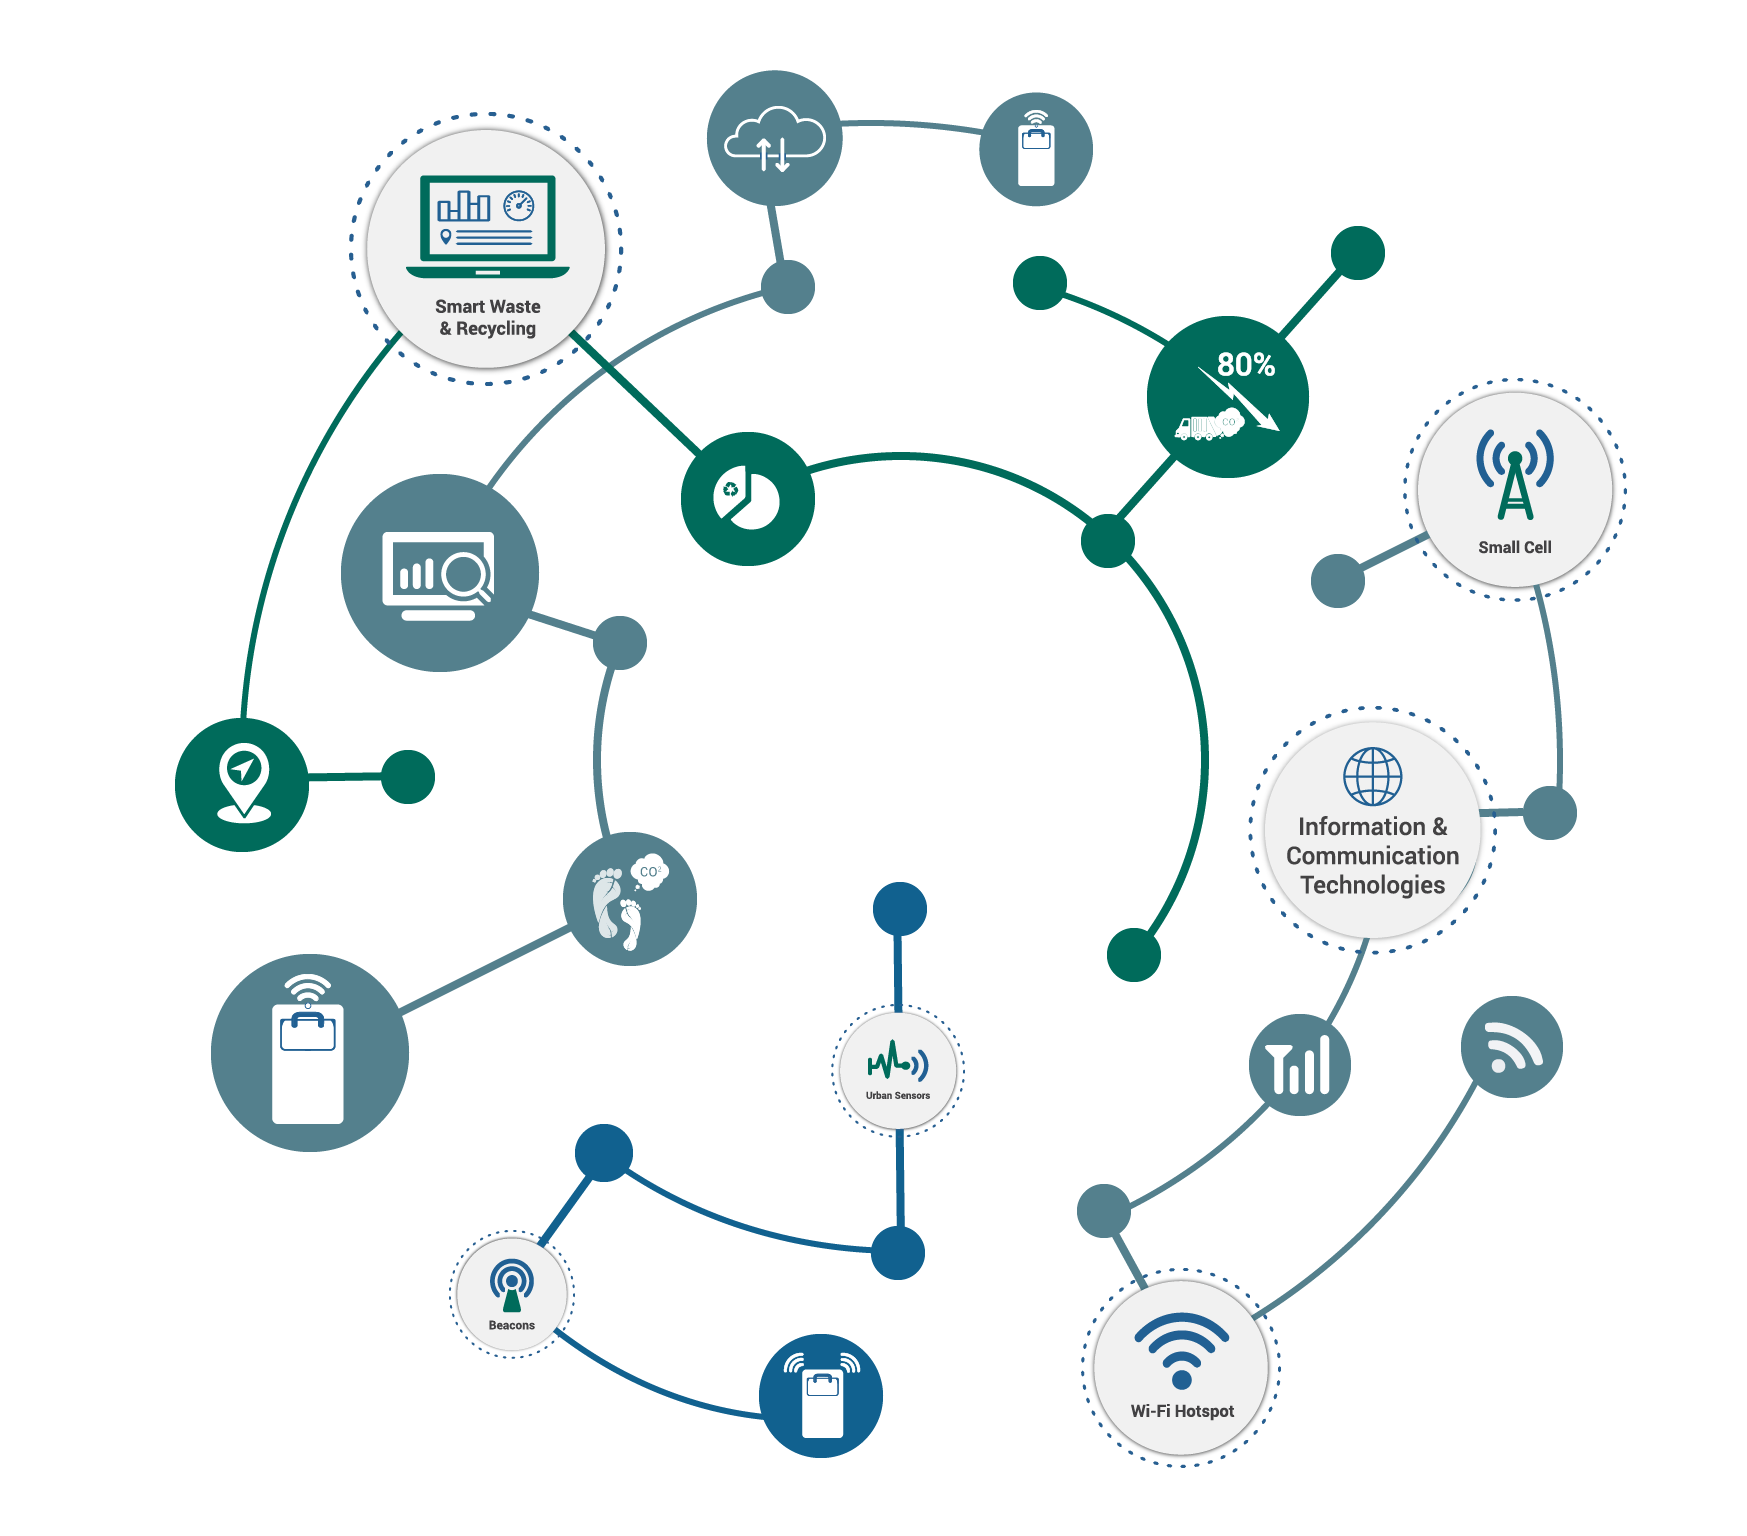 Vector solution smart. Bigbelly solutions for cities